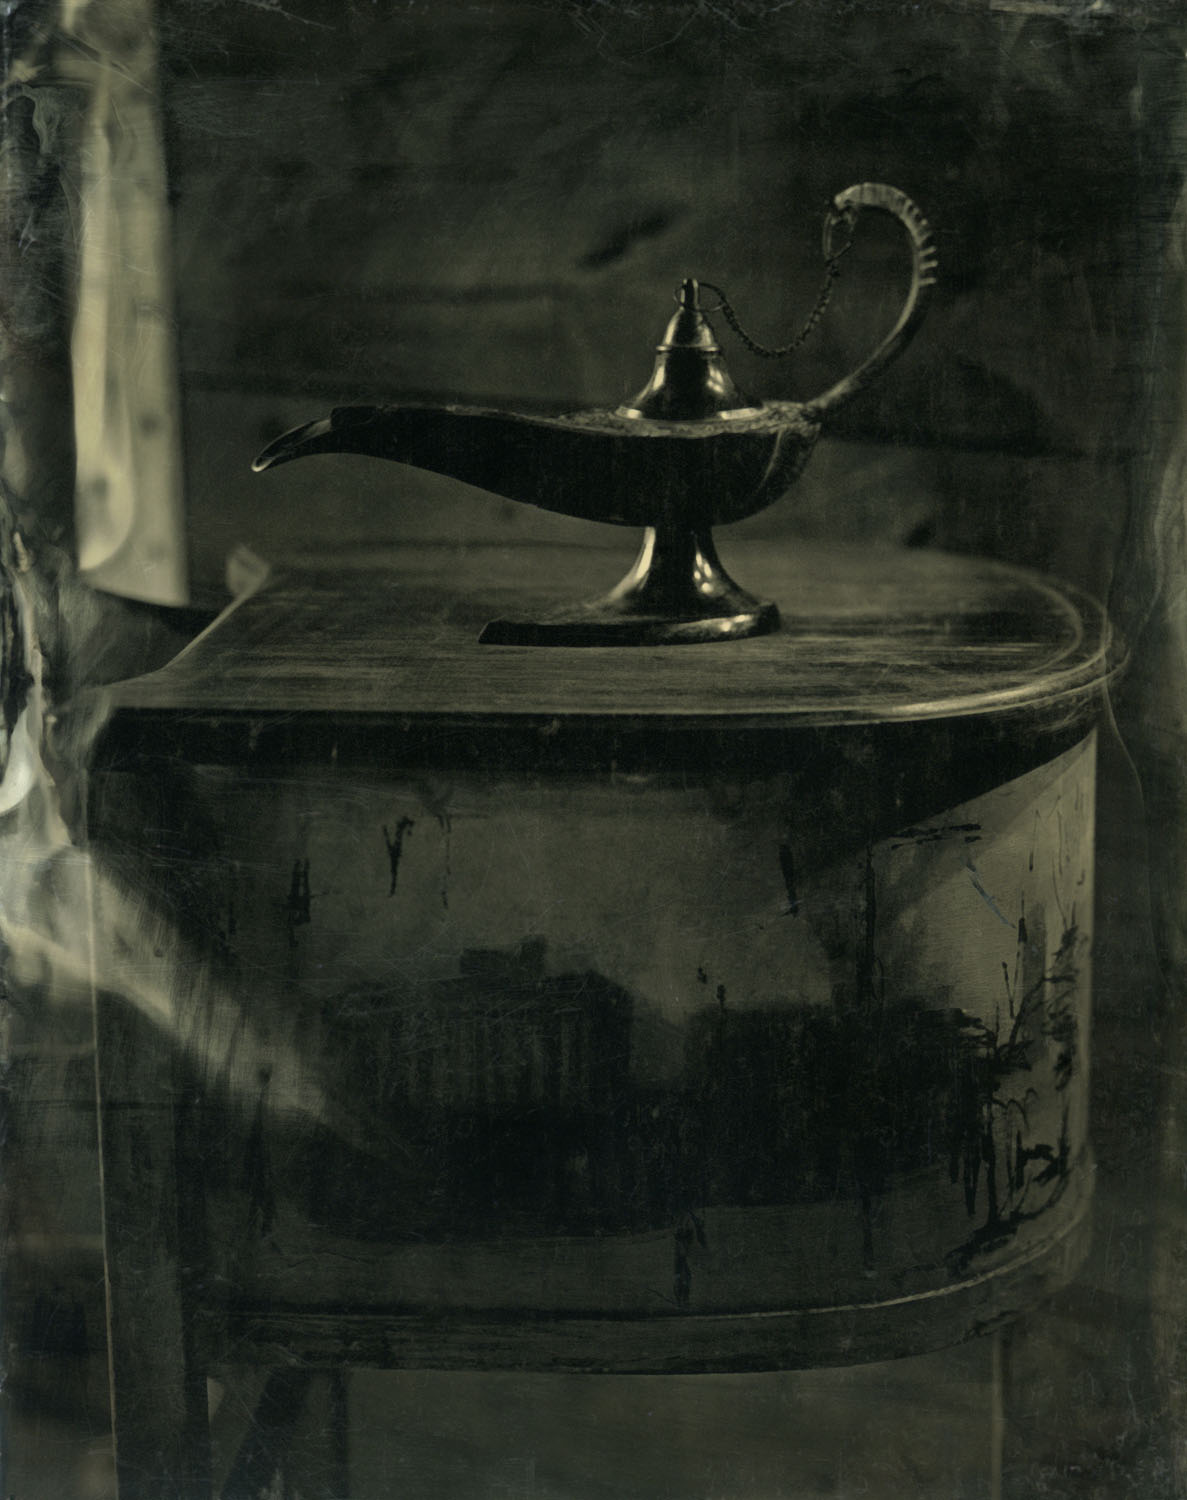 Genie Lamp - By:Dylan Slater